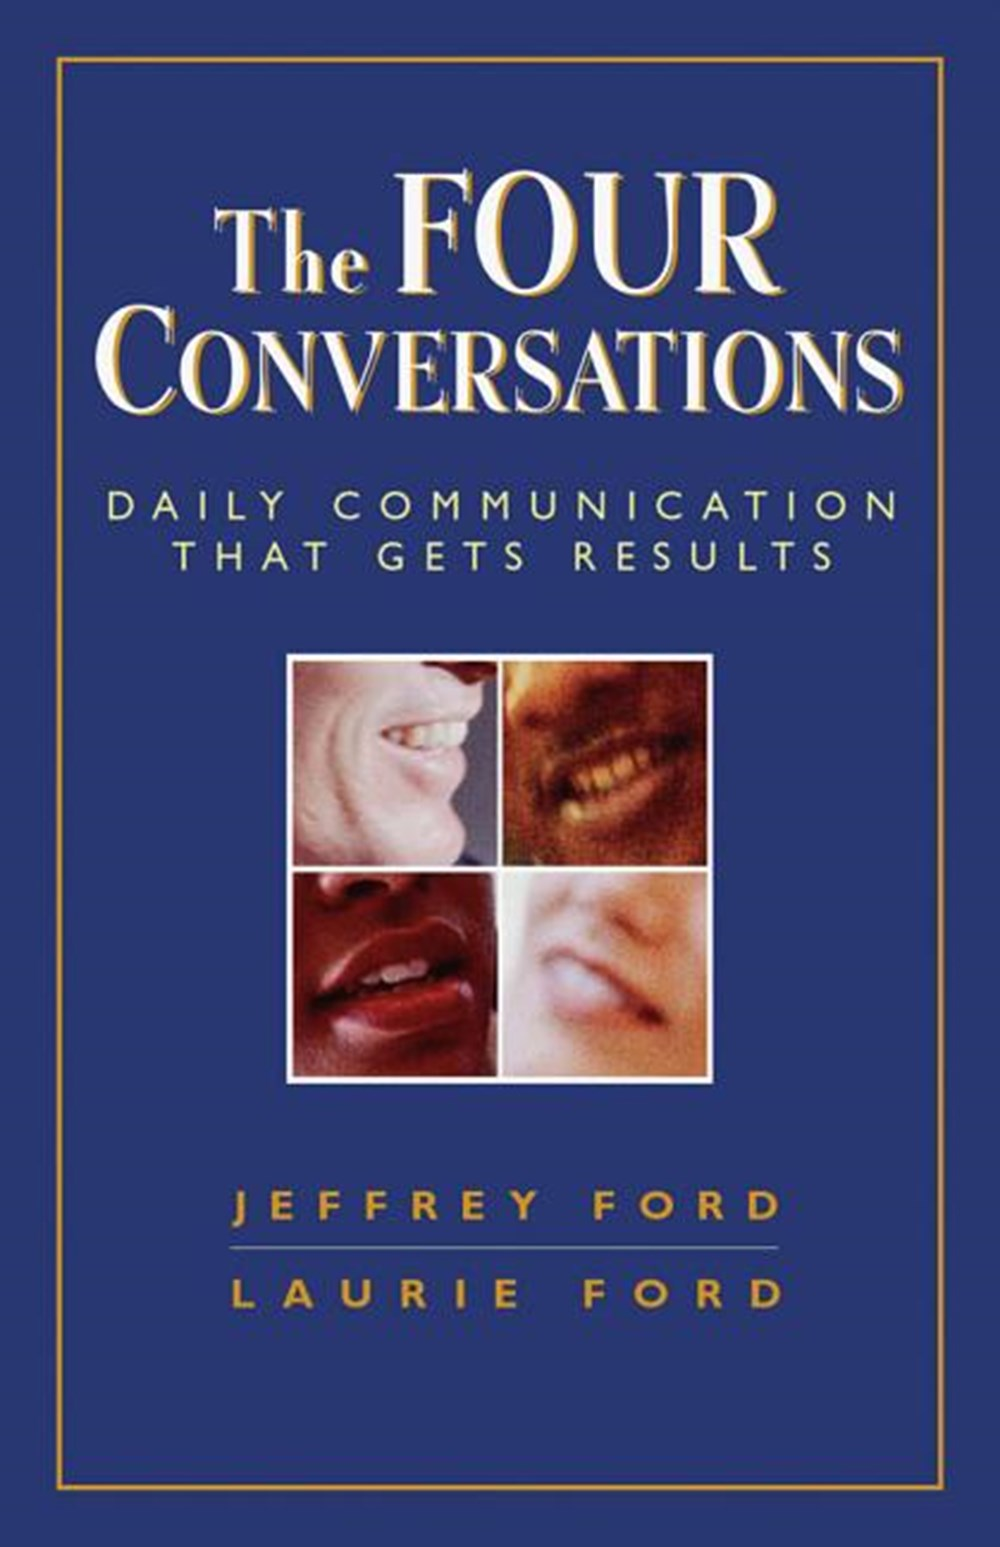 Four Conversations Daily Communication That Gets Results